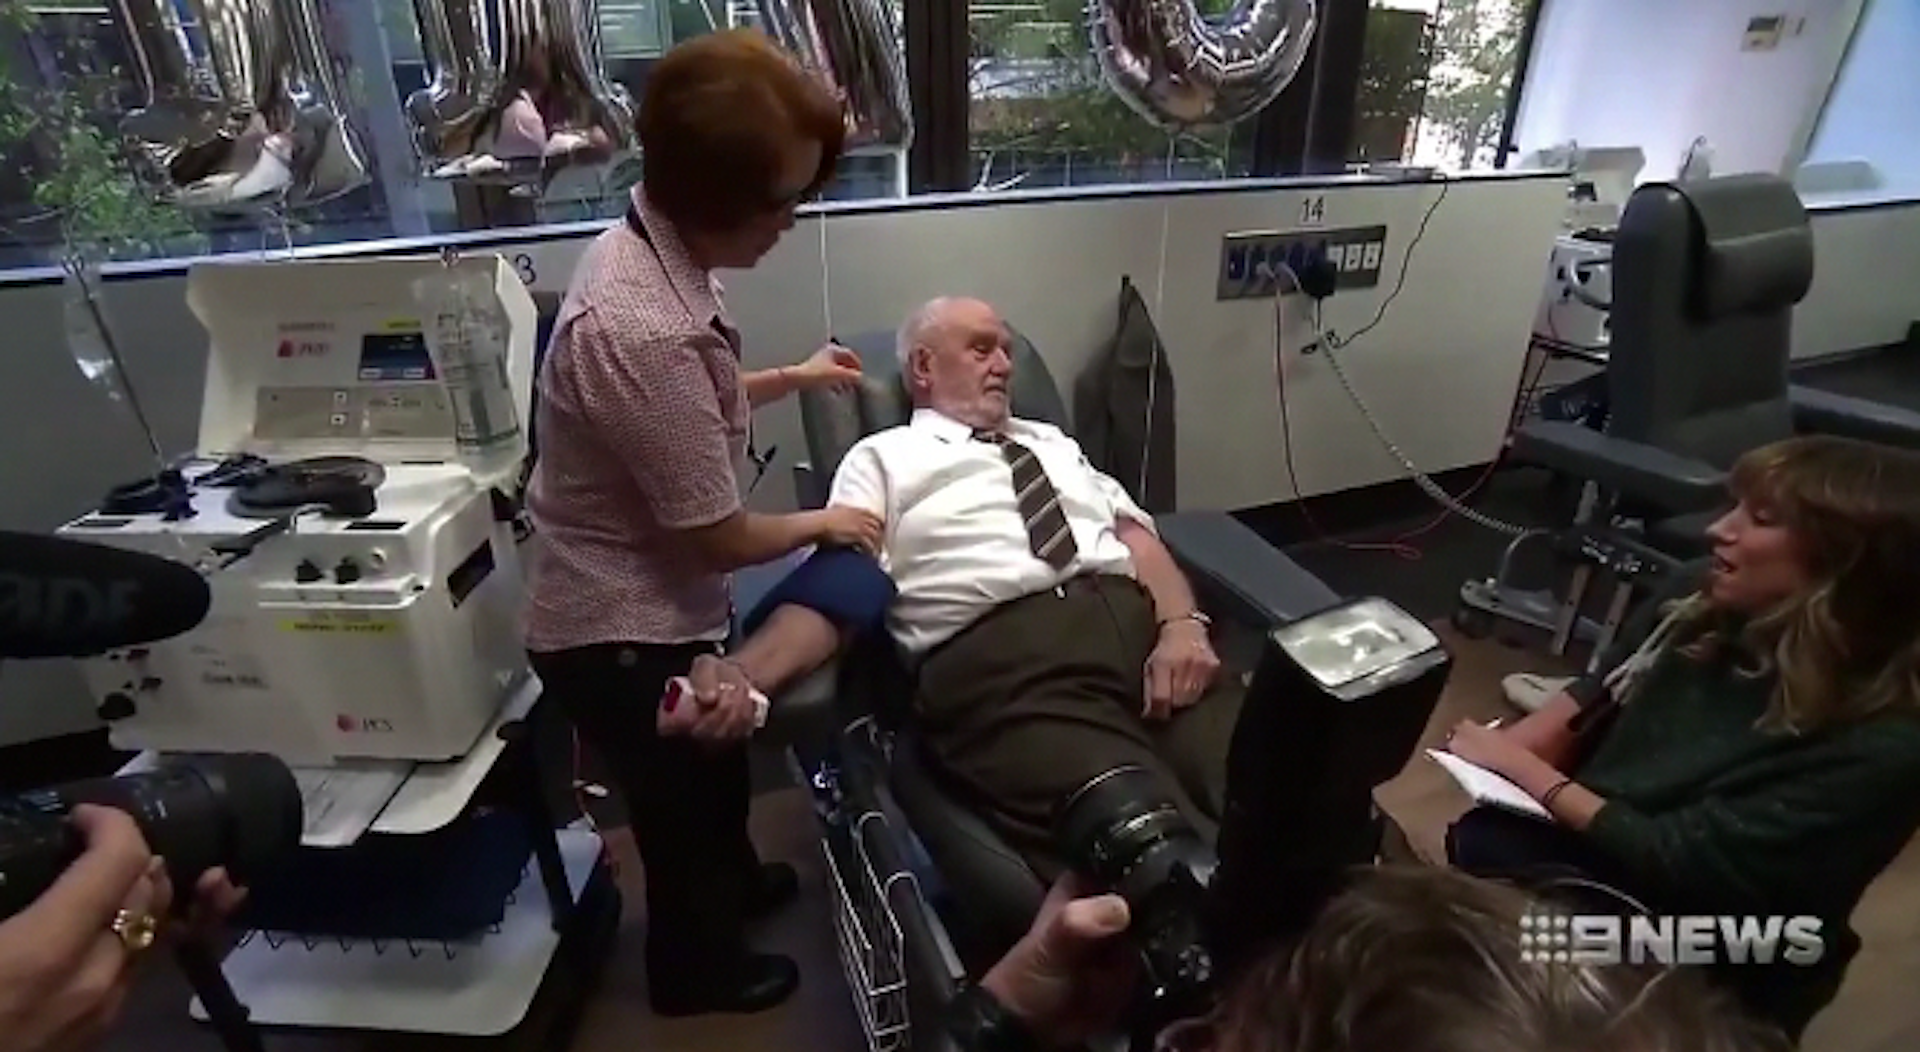 For six decades, 'the man with the golden arm' donated blood — and saved 2.4 million babies